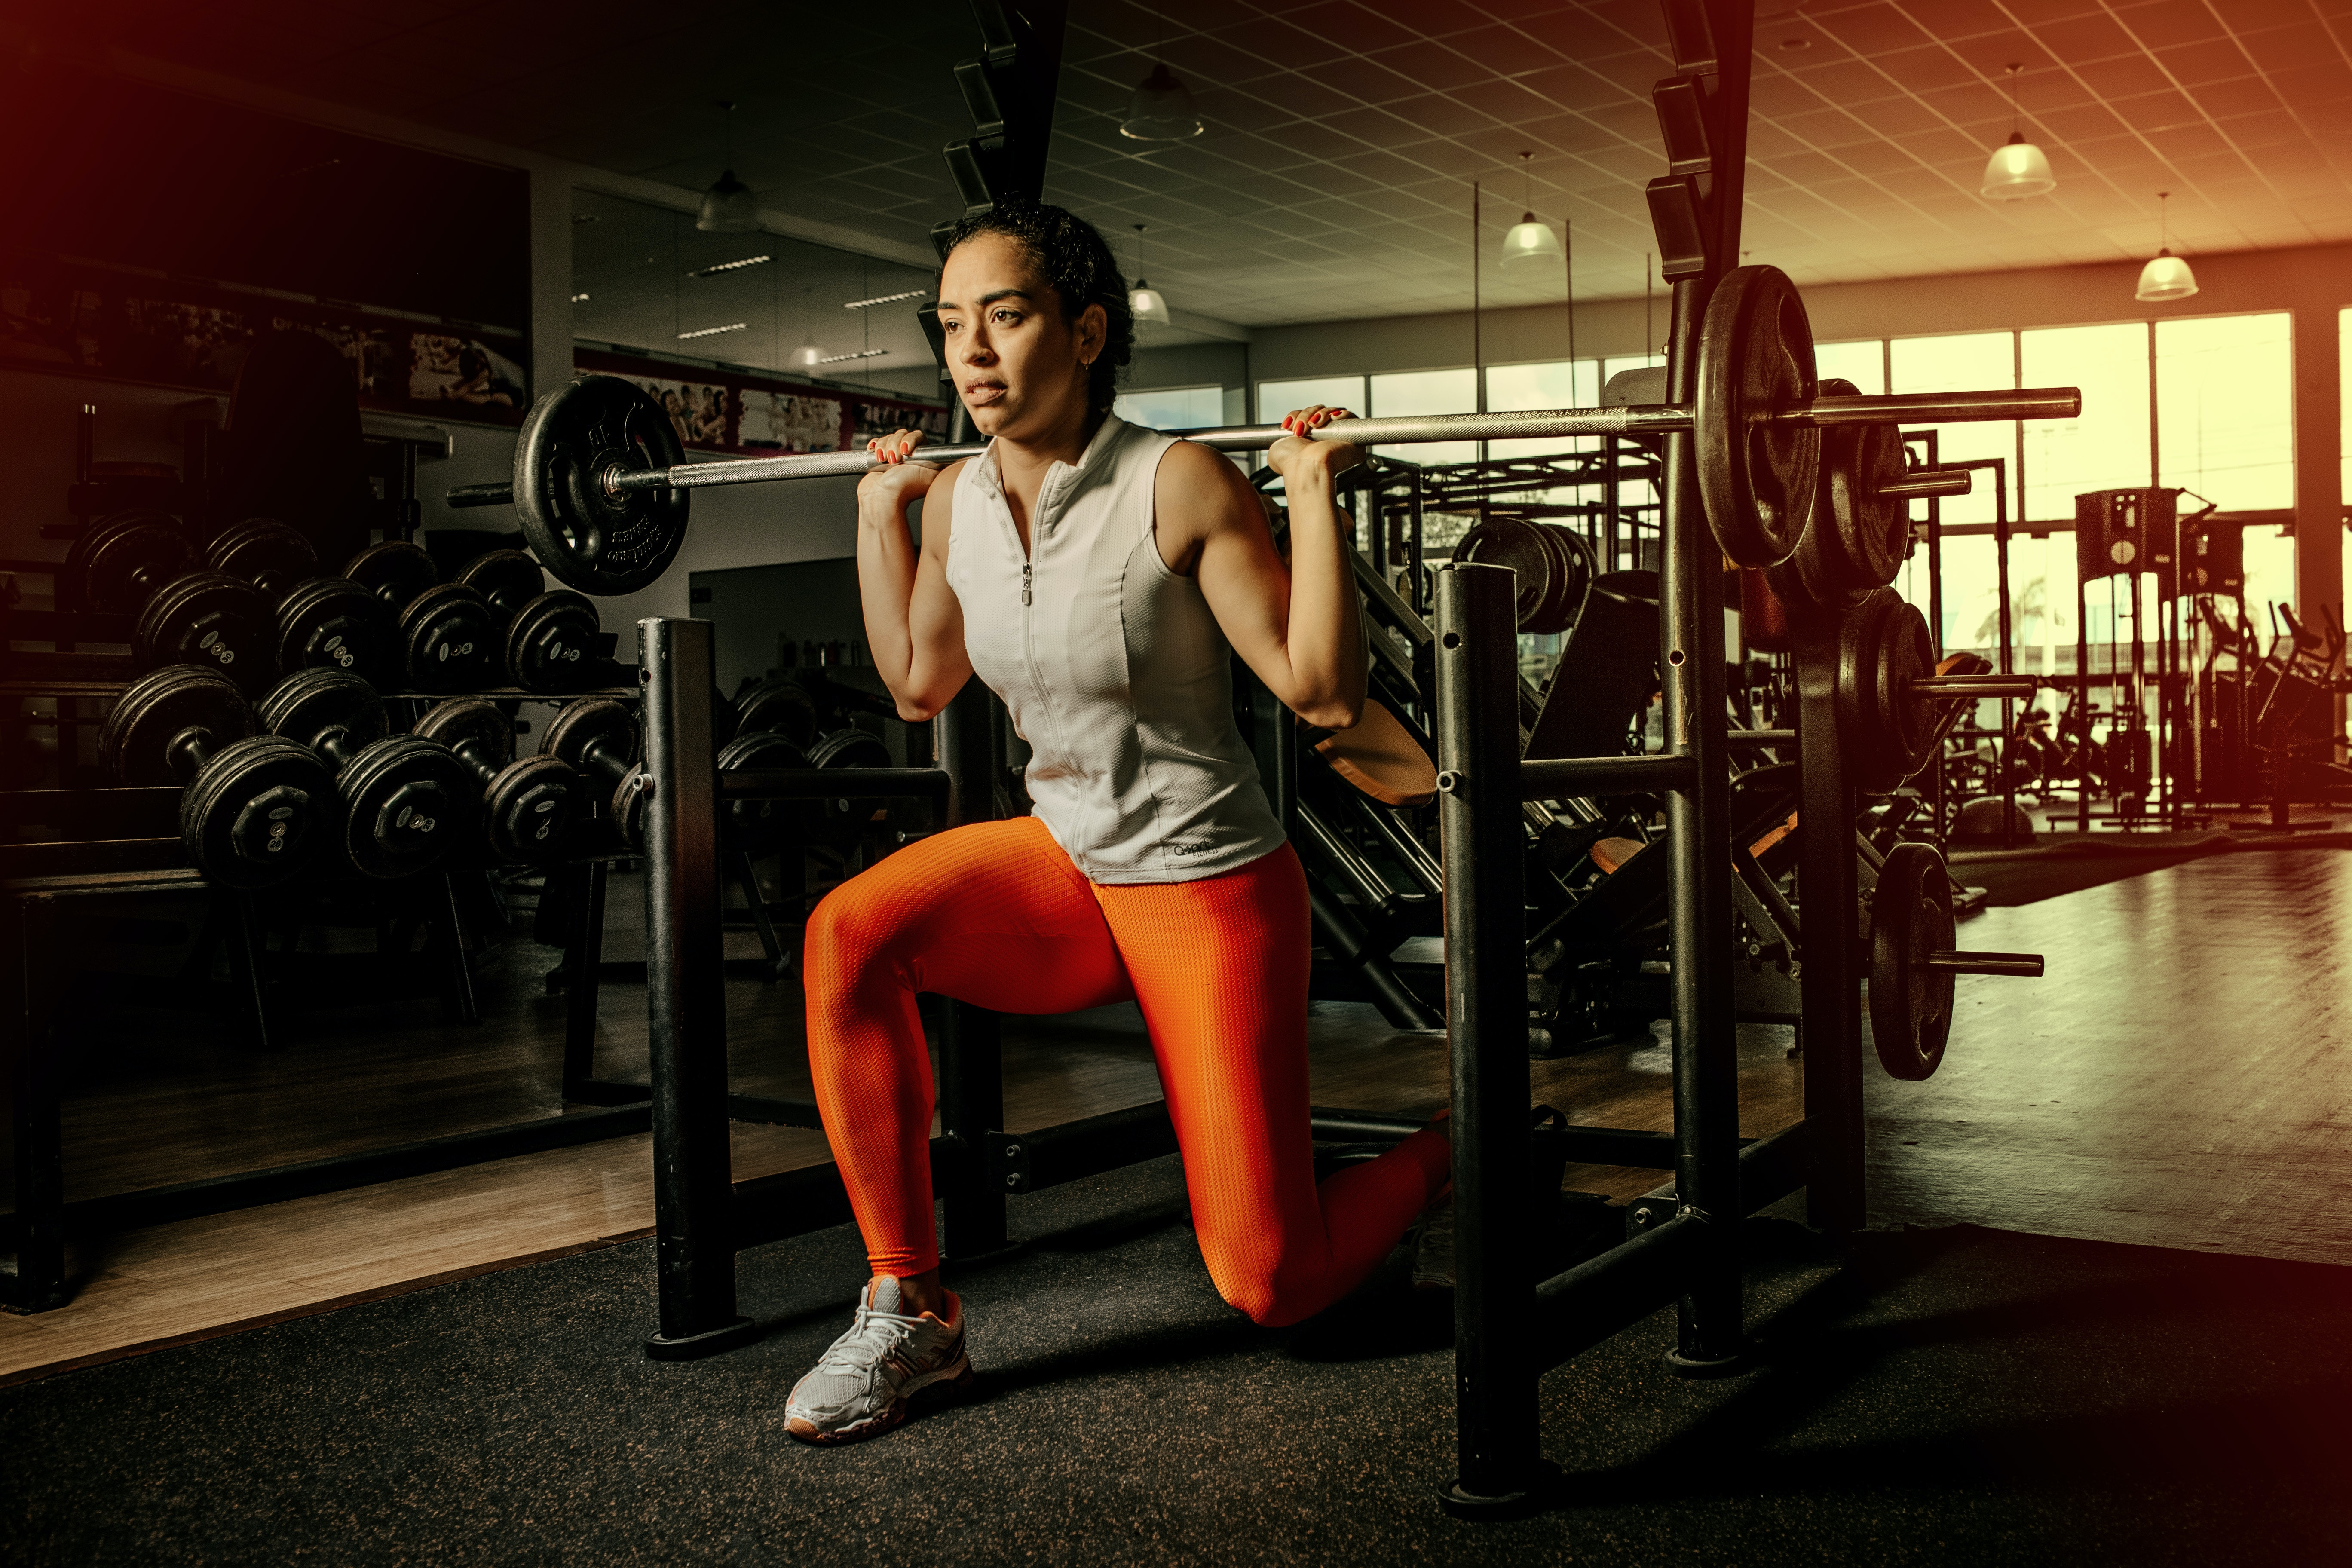 A woman lunges with a barbell in an empty gym.